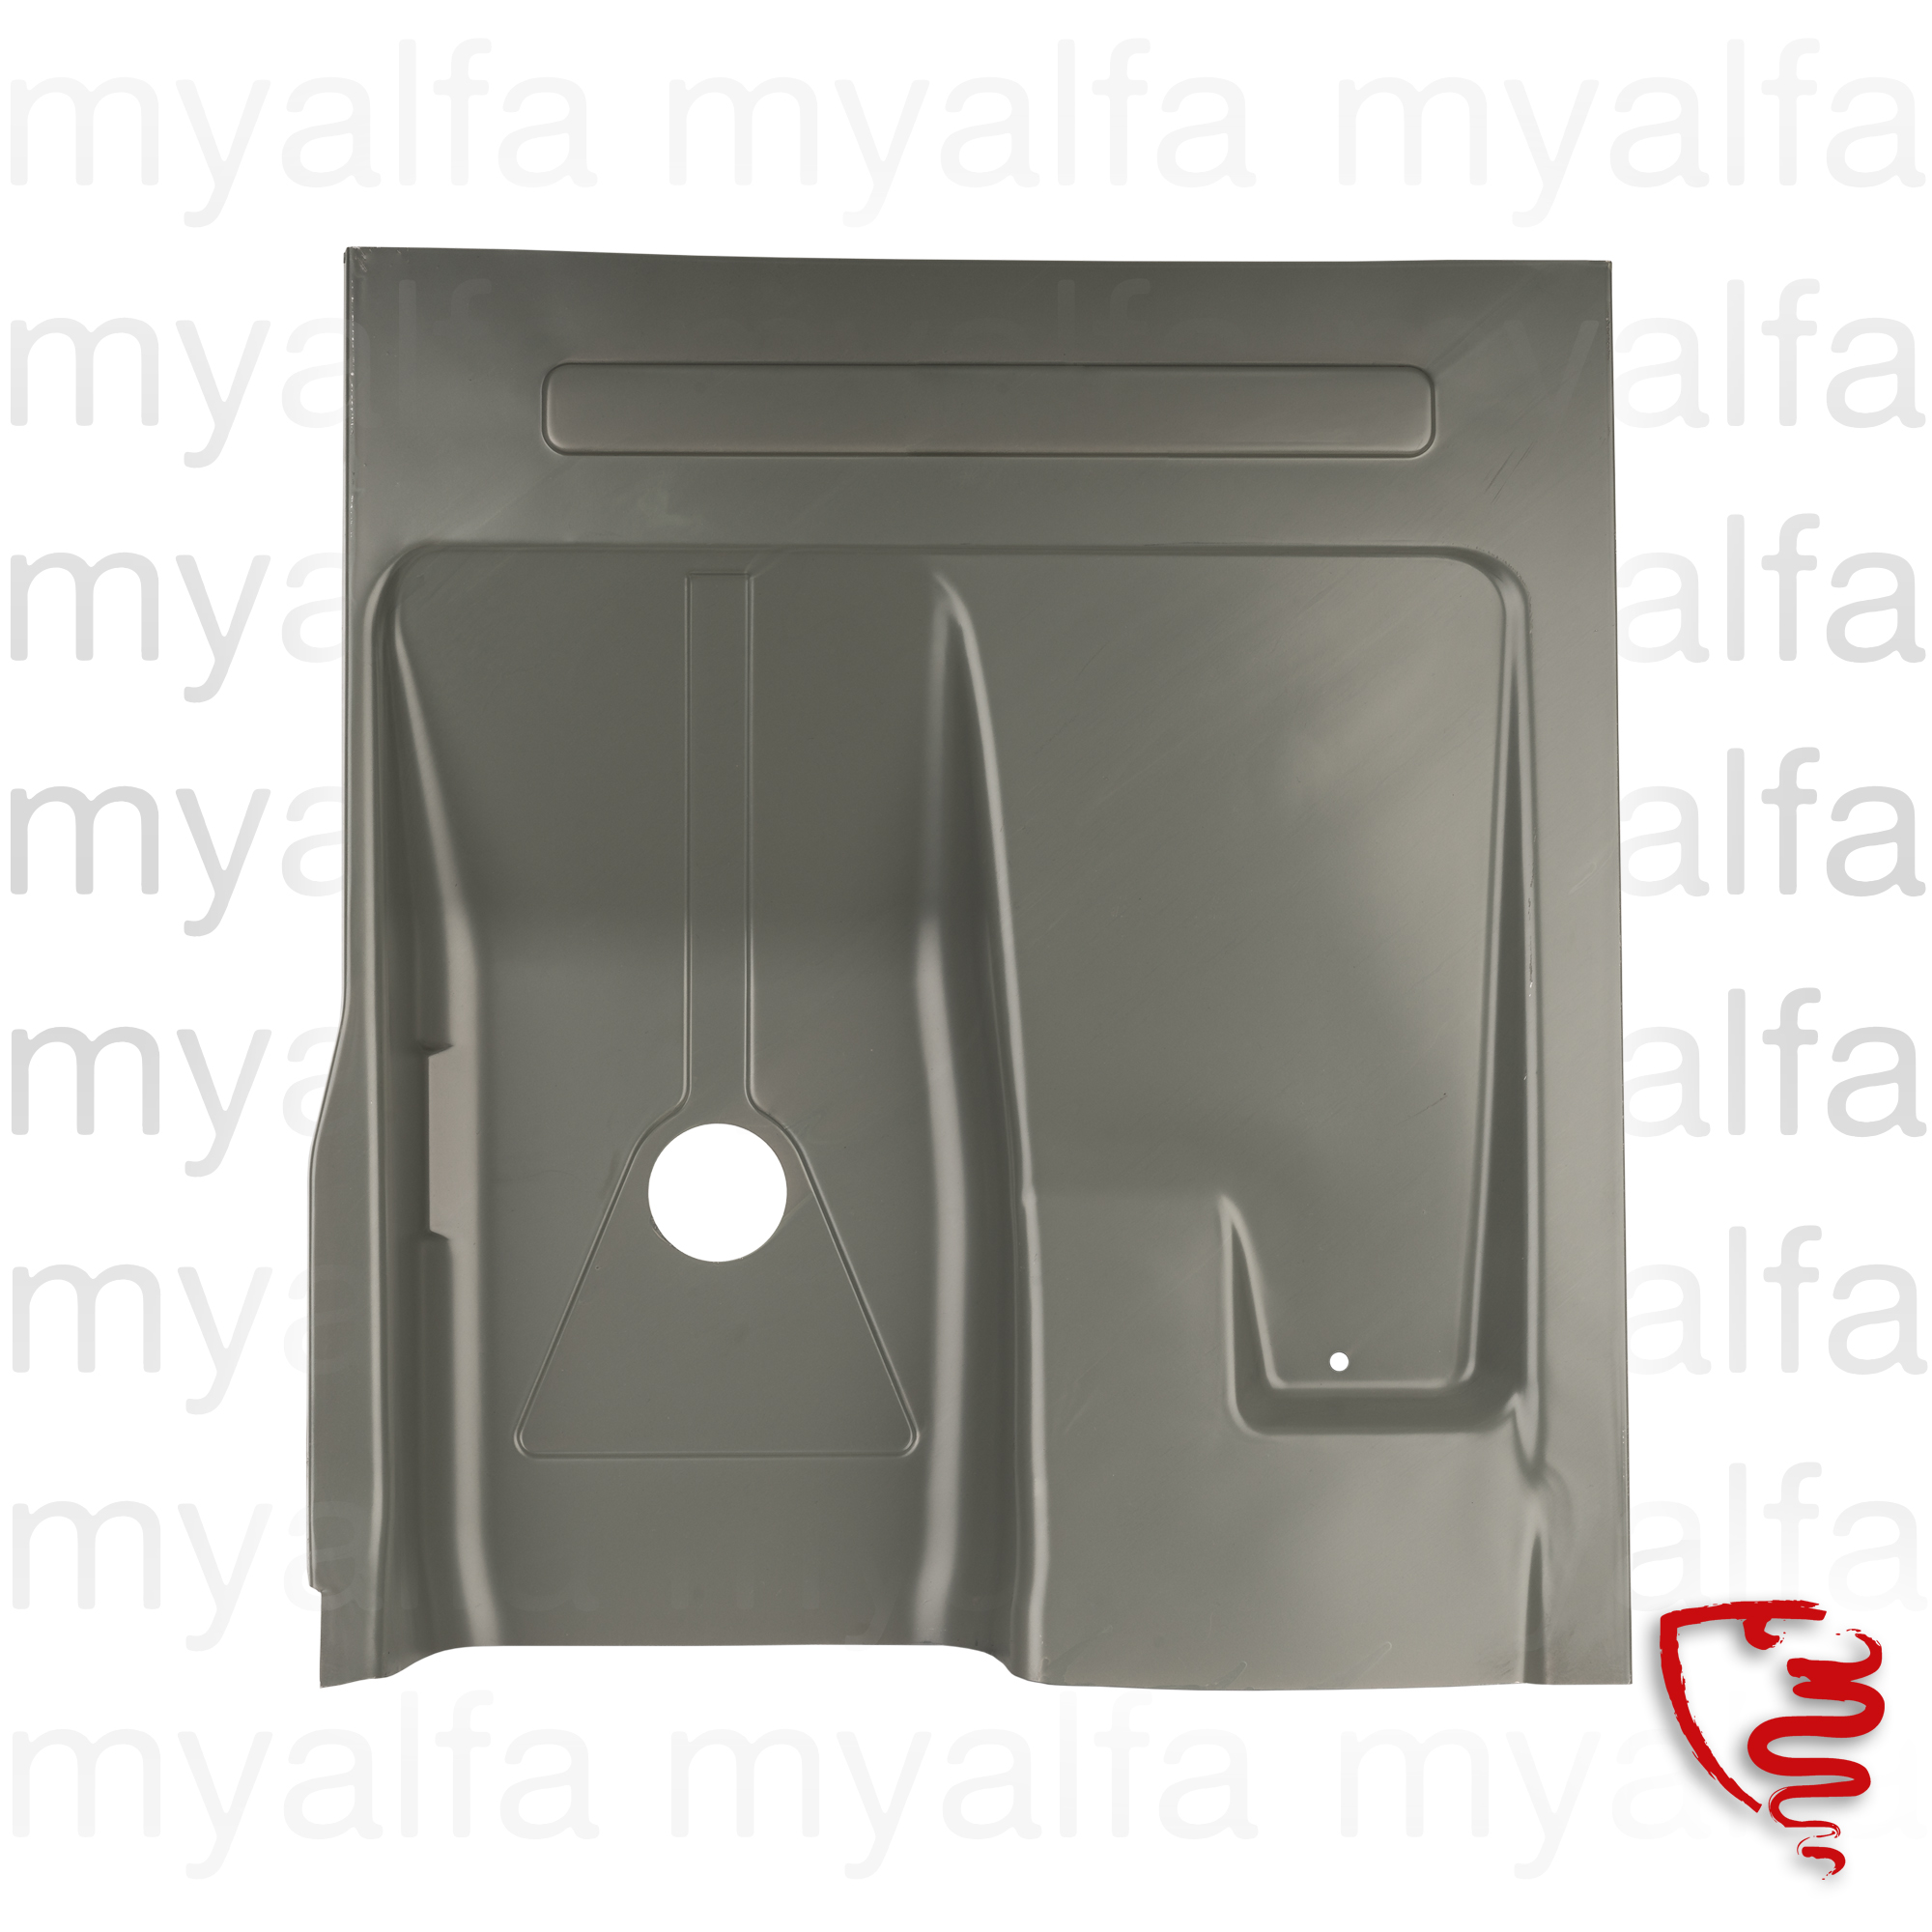 Panel floor right behind Spider 1970-93 for 105/115, Spider, Body parts, Panels, Floor